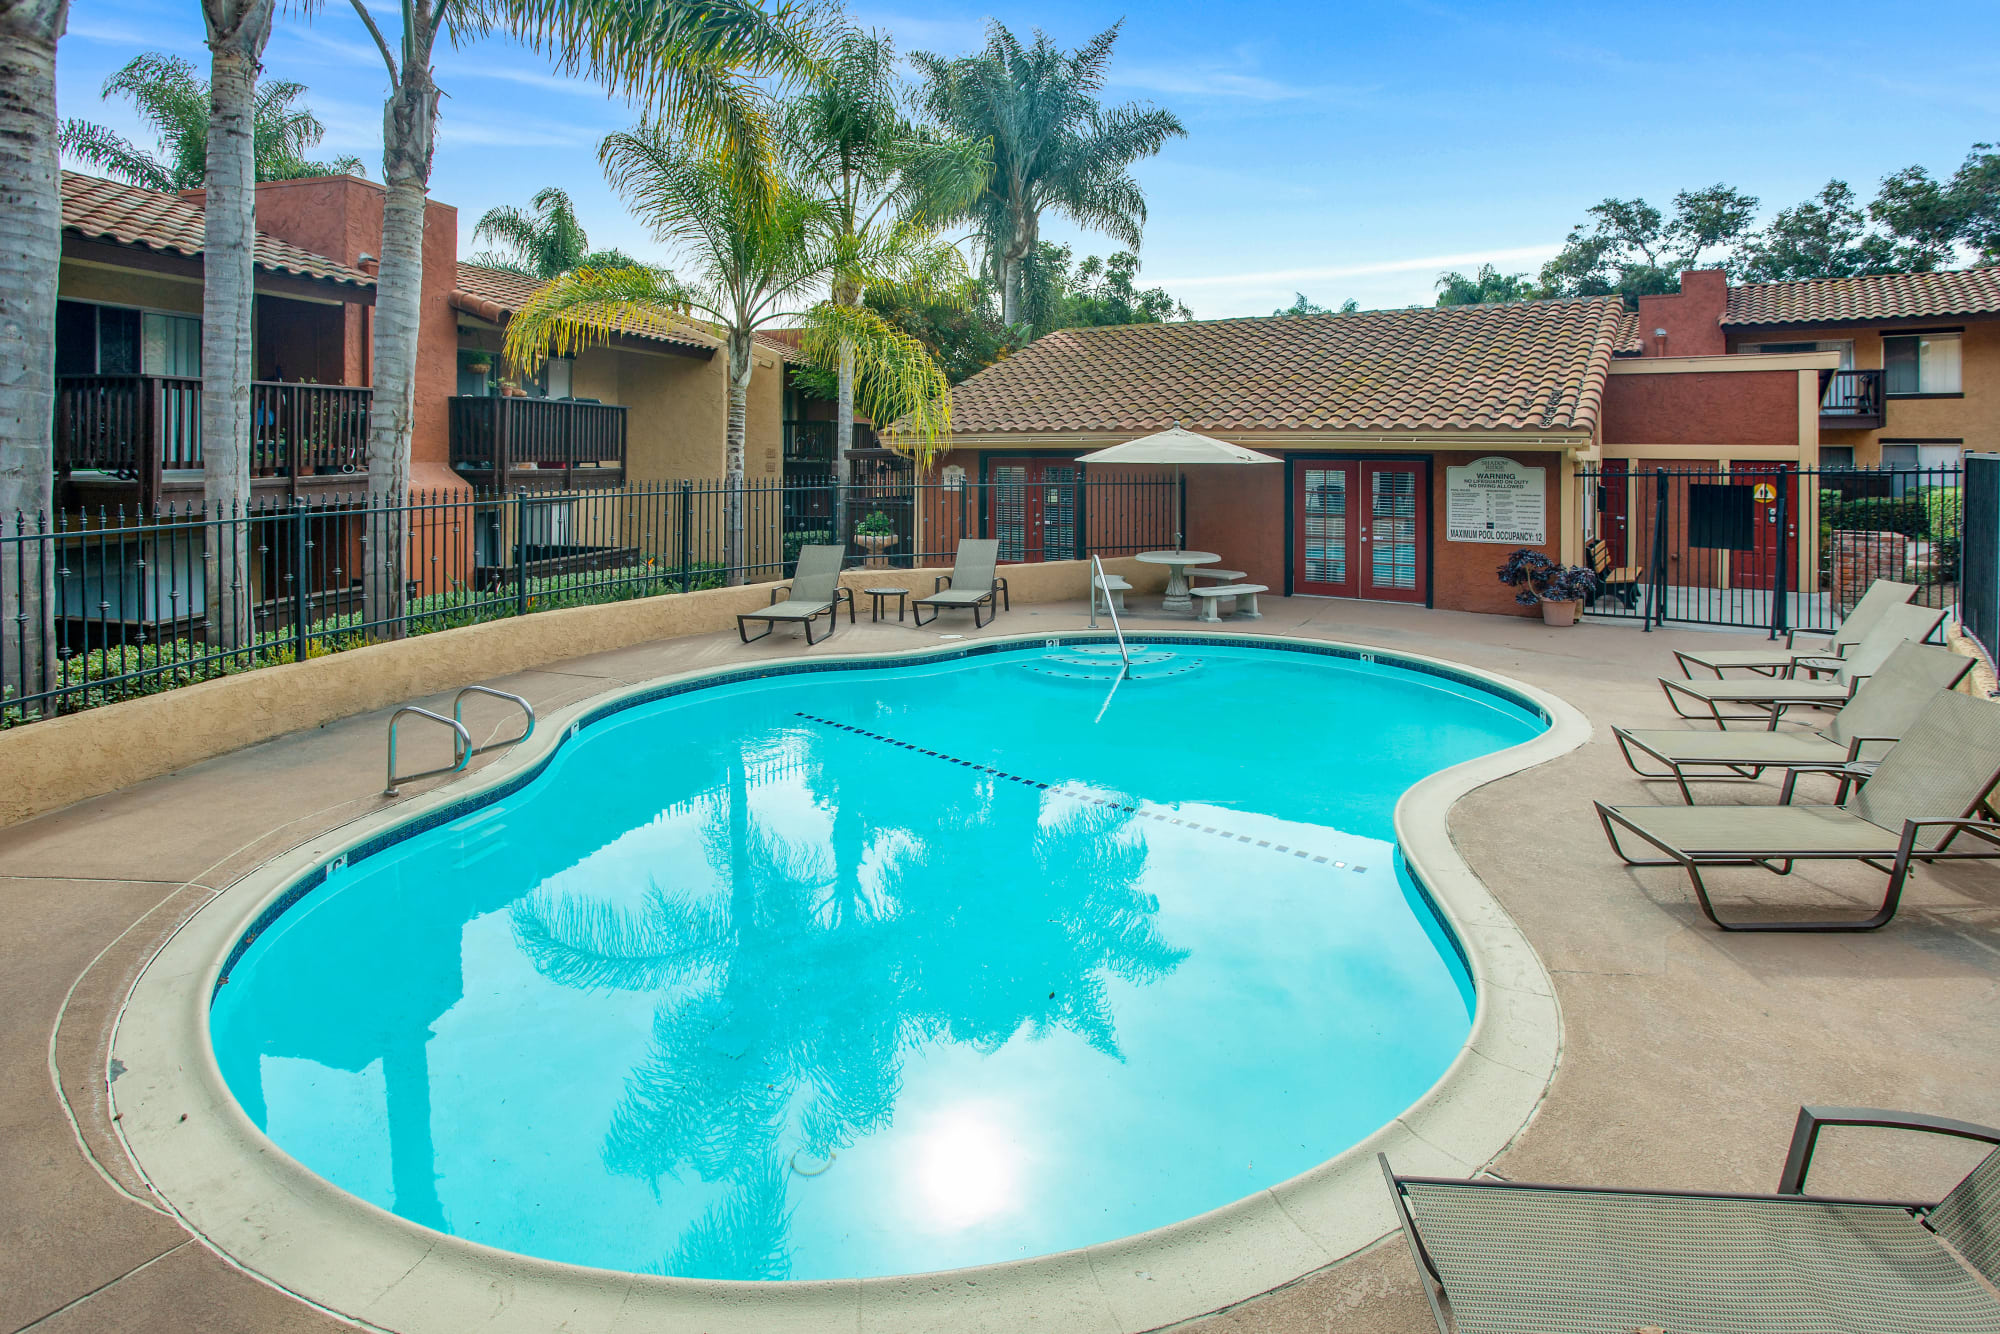 Pool with lounge chairs at Shadow Ridge Apartments in Oceanside, California